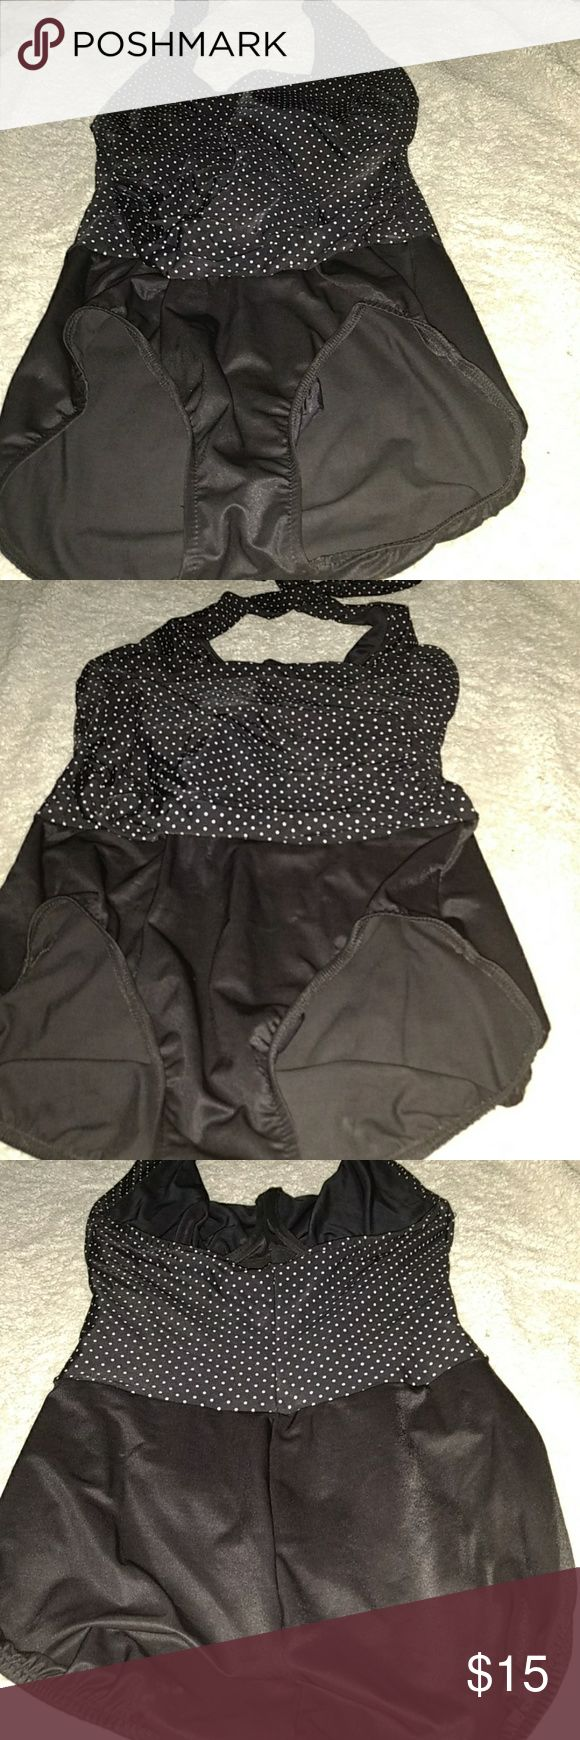 Swim suit. Wore 1x. Miraculous suit Black with white polk dots on top. Under wire bra , the top ia blousy to flatter, it has hidden stomach panel, very noce suit Eddie Bauer Swim One Pieces